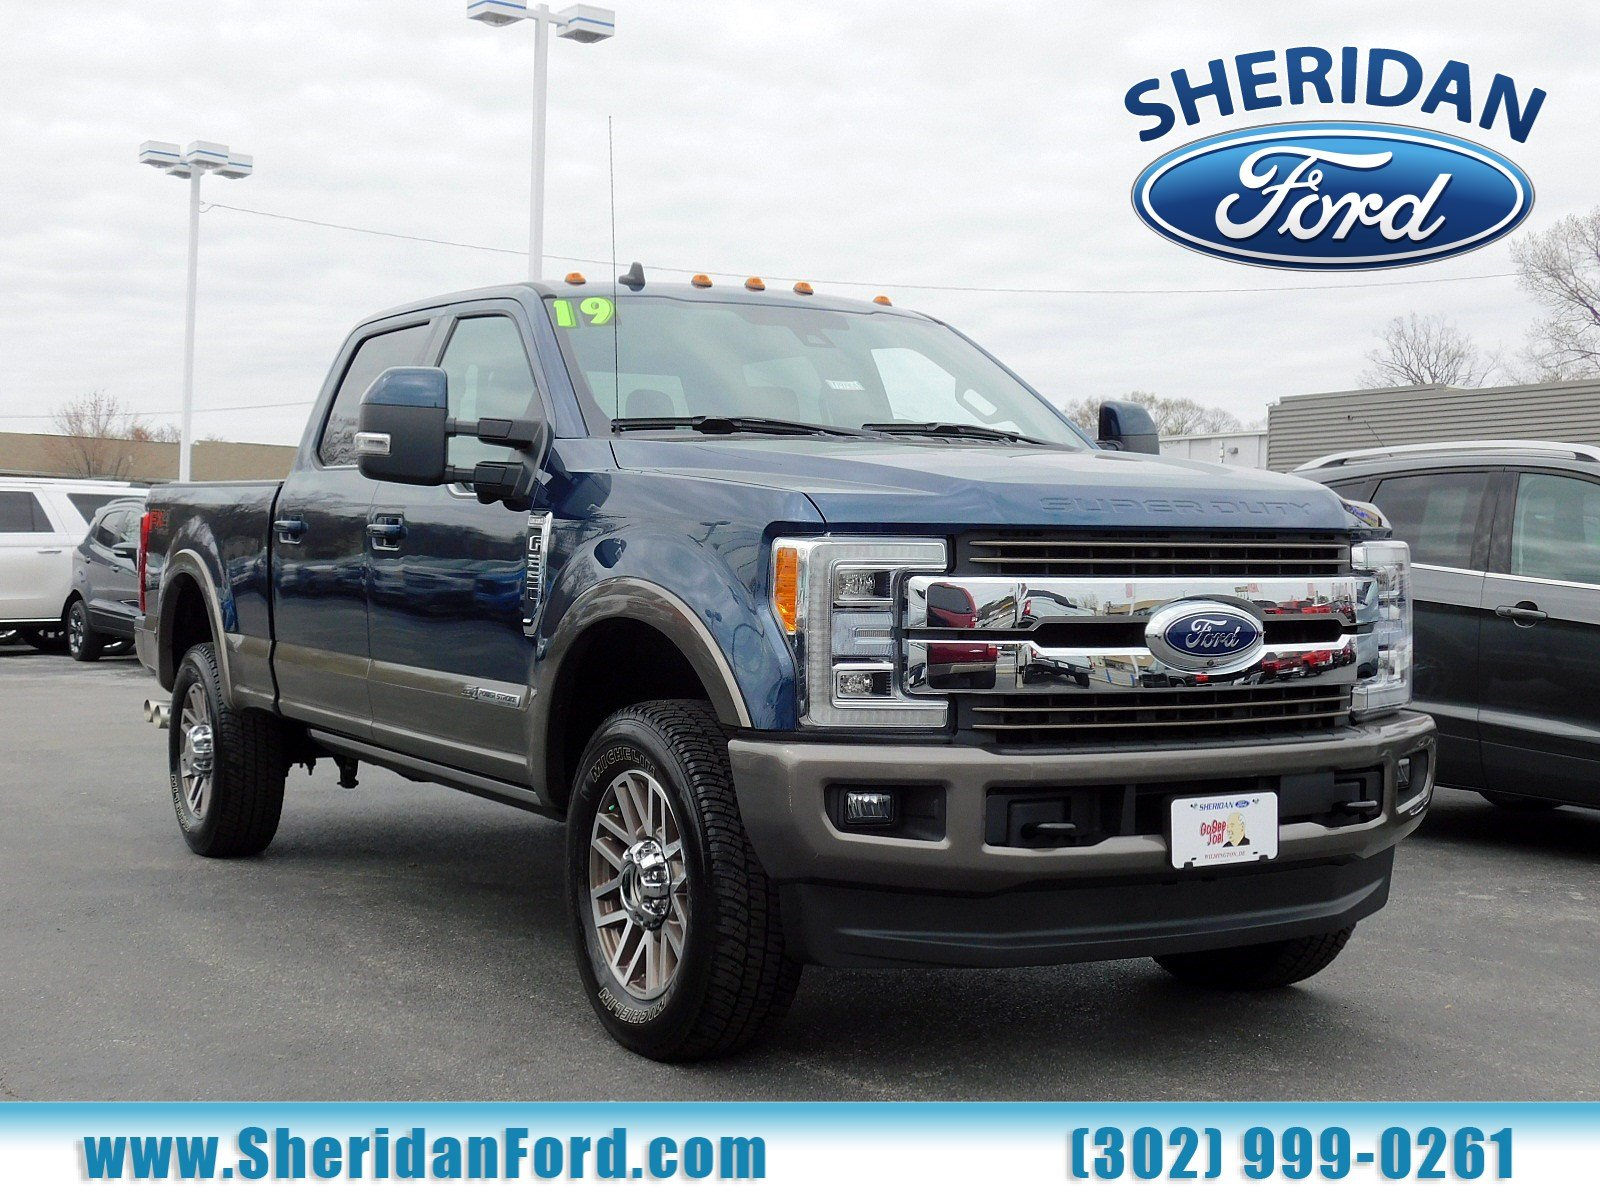 Certified Pre-Owned 2019 Ford Super Duty F-250 SRW King Ranch